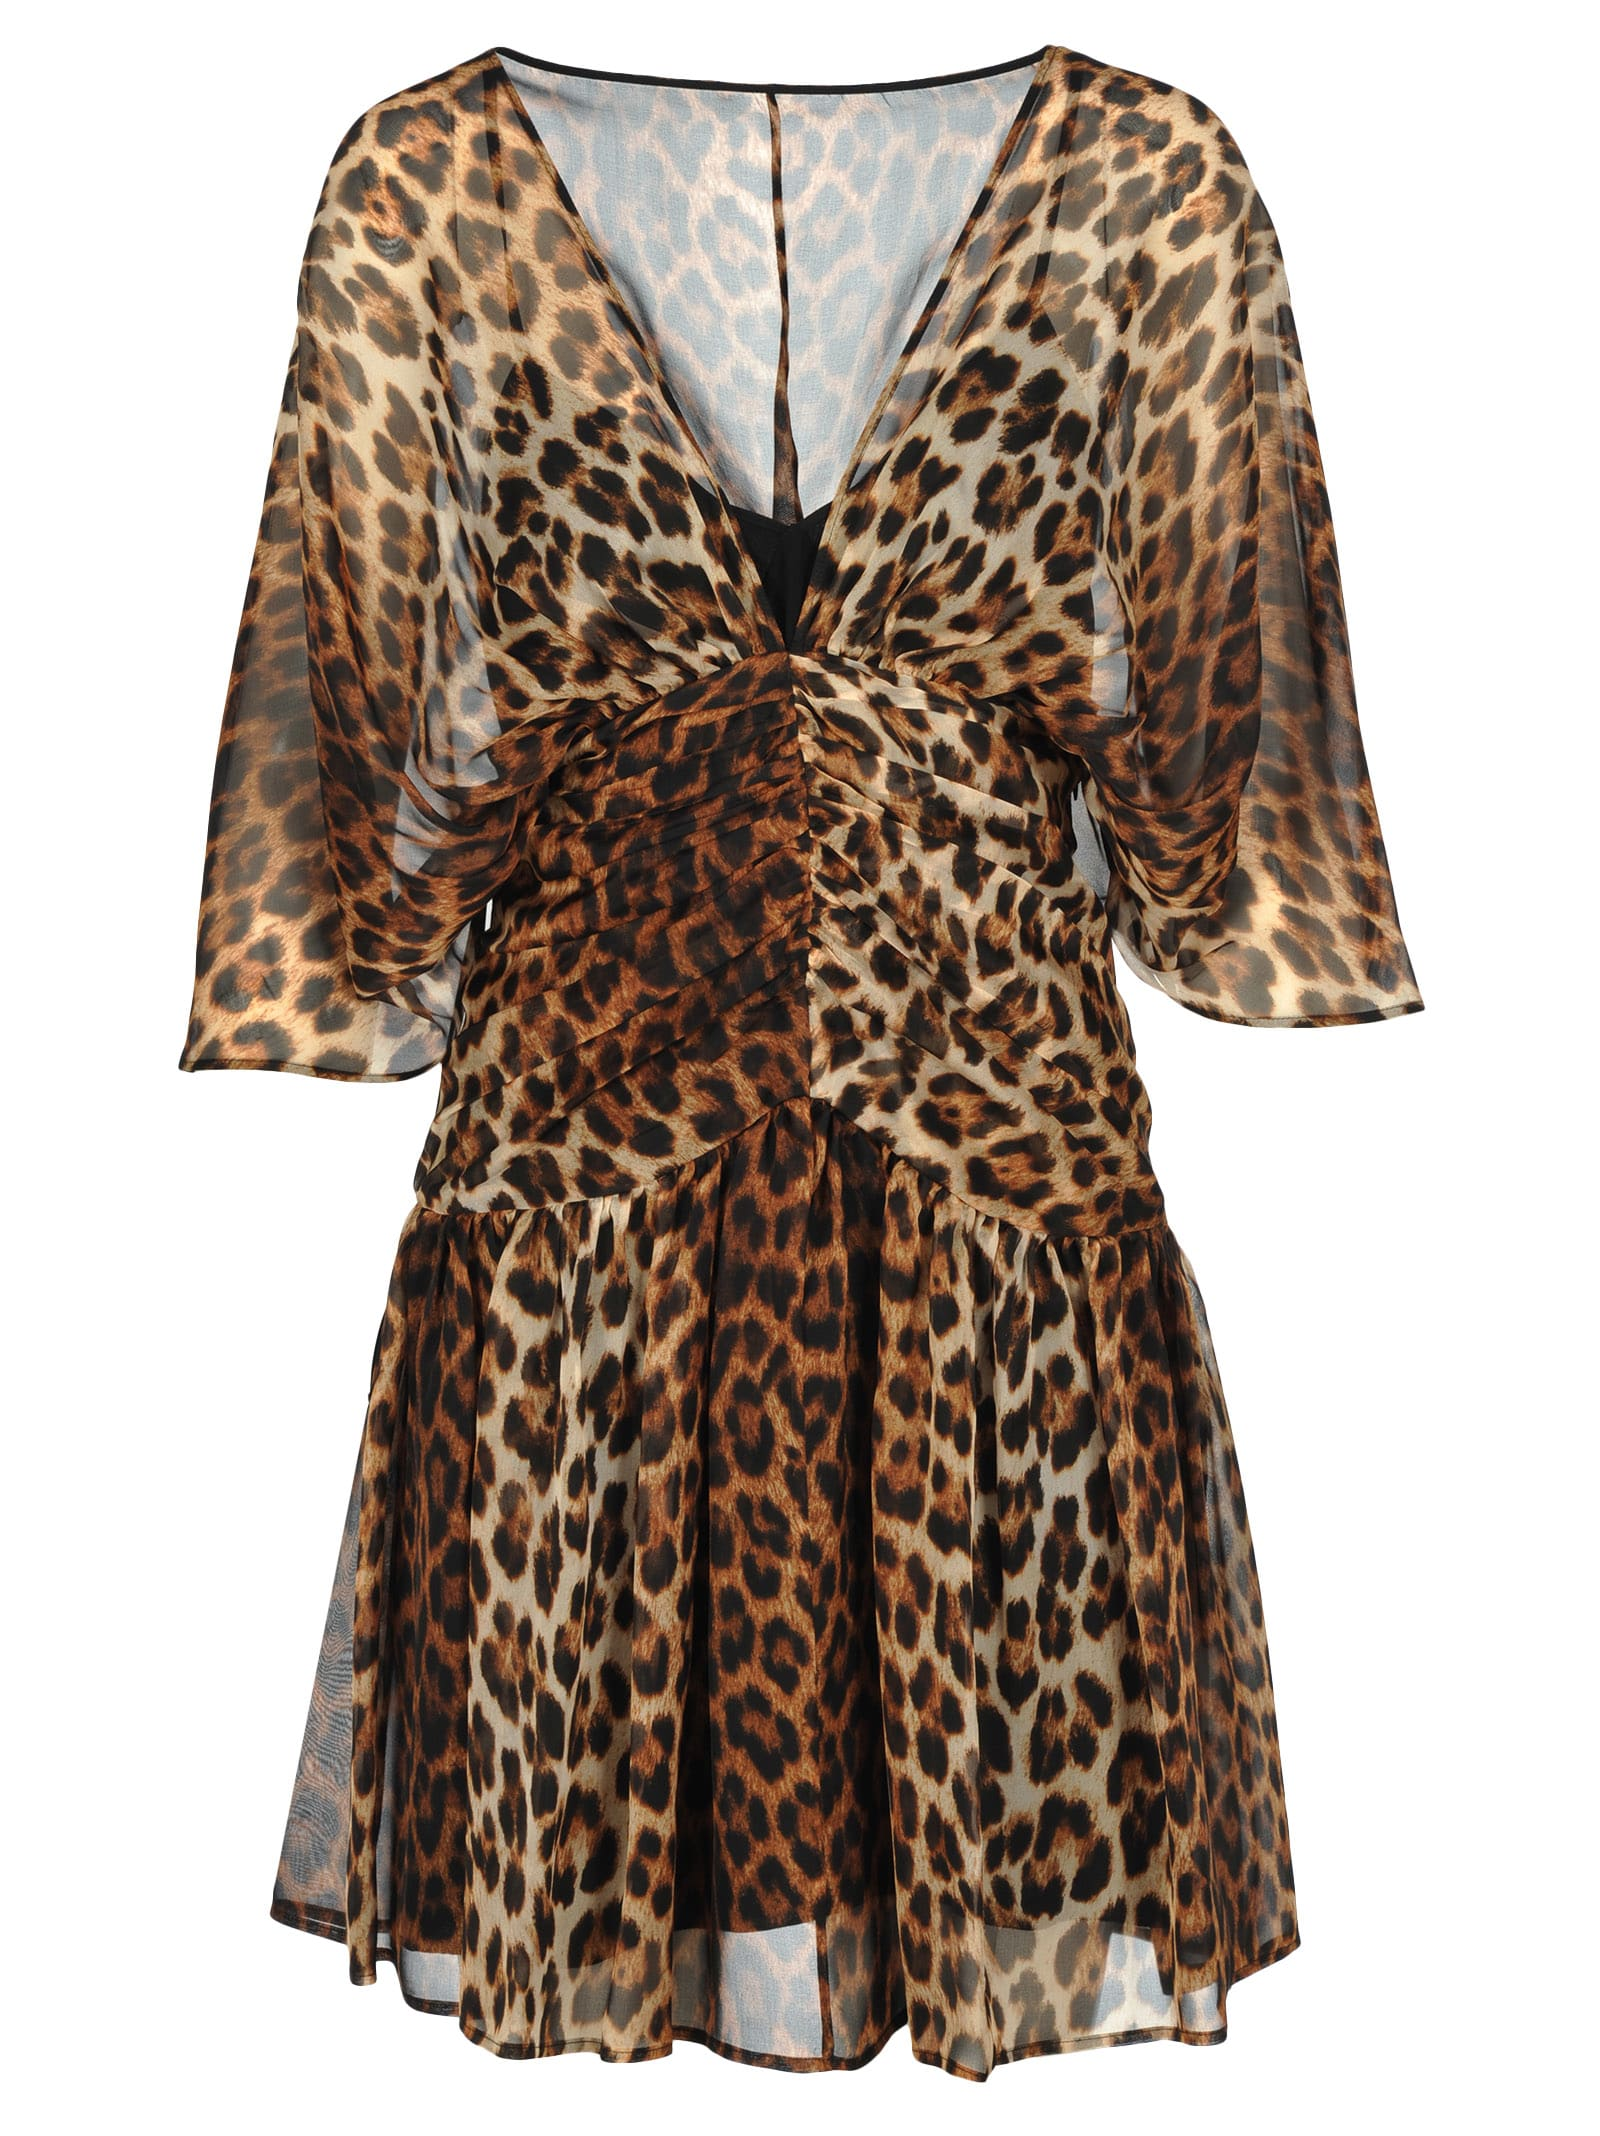 N21 Leopard Print Silk Mini Dress